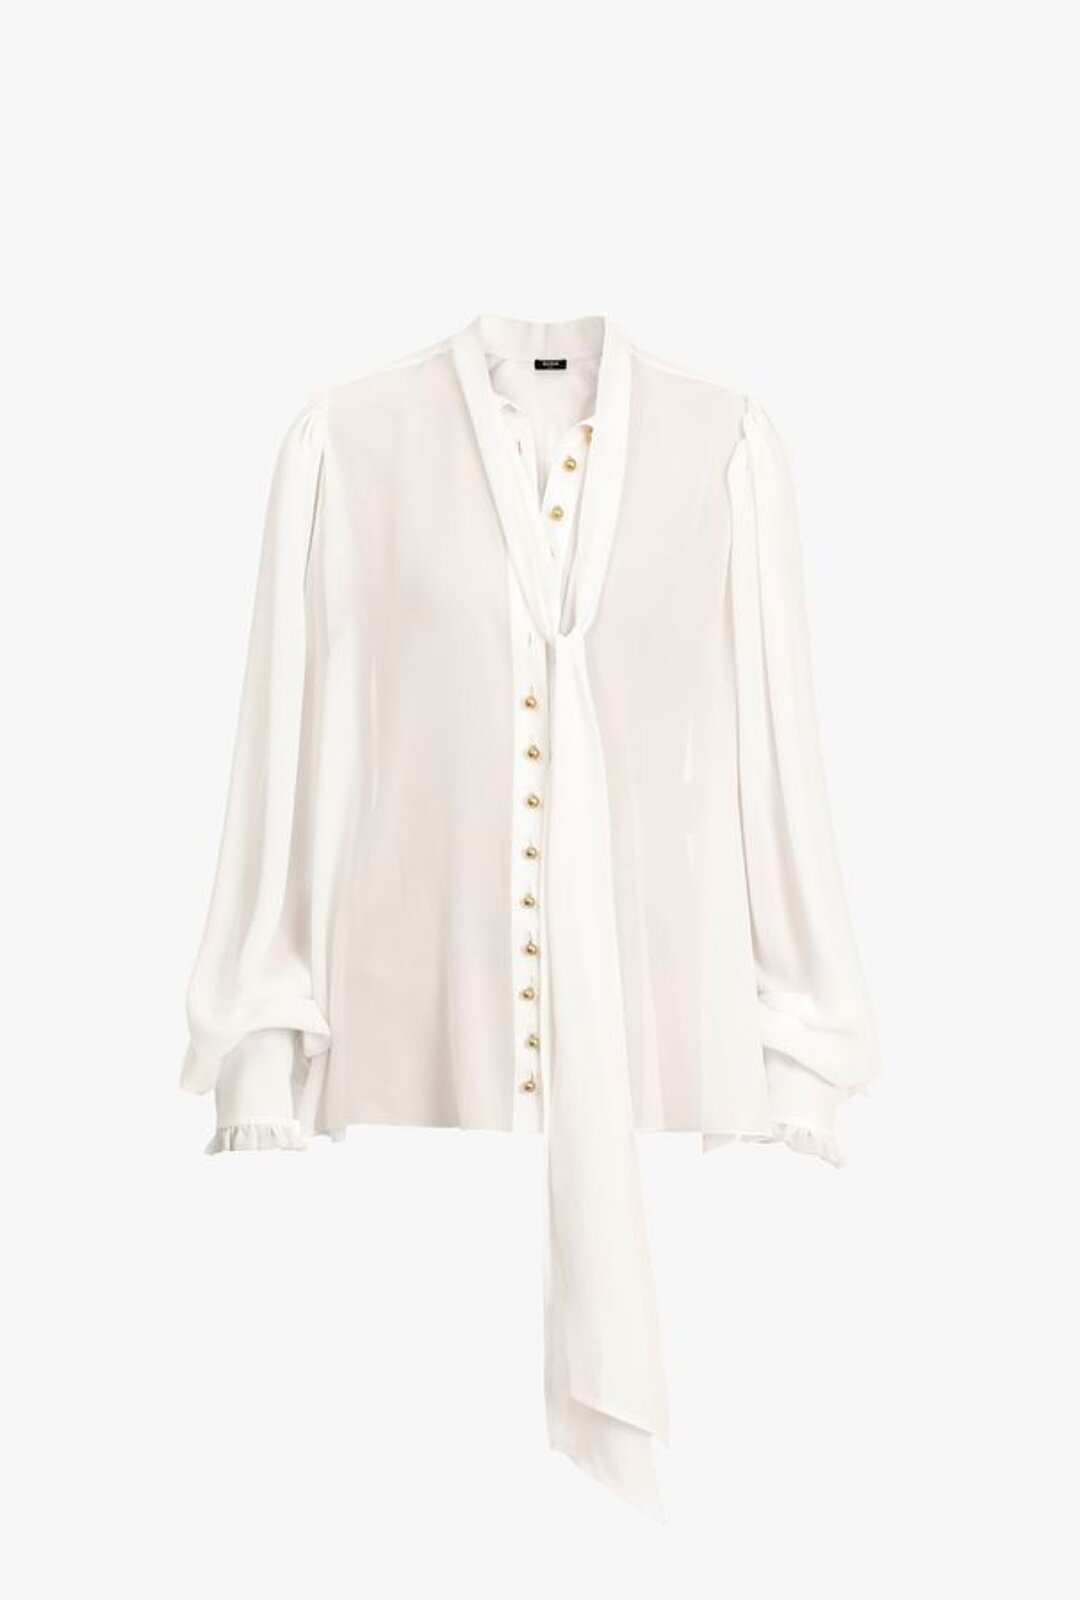 Georgette Blouse With White Bow - Balmain